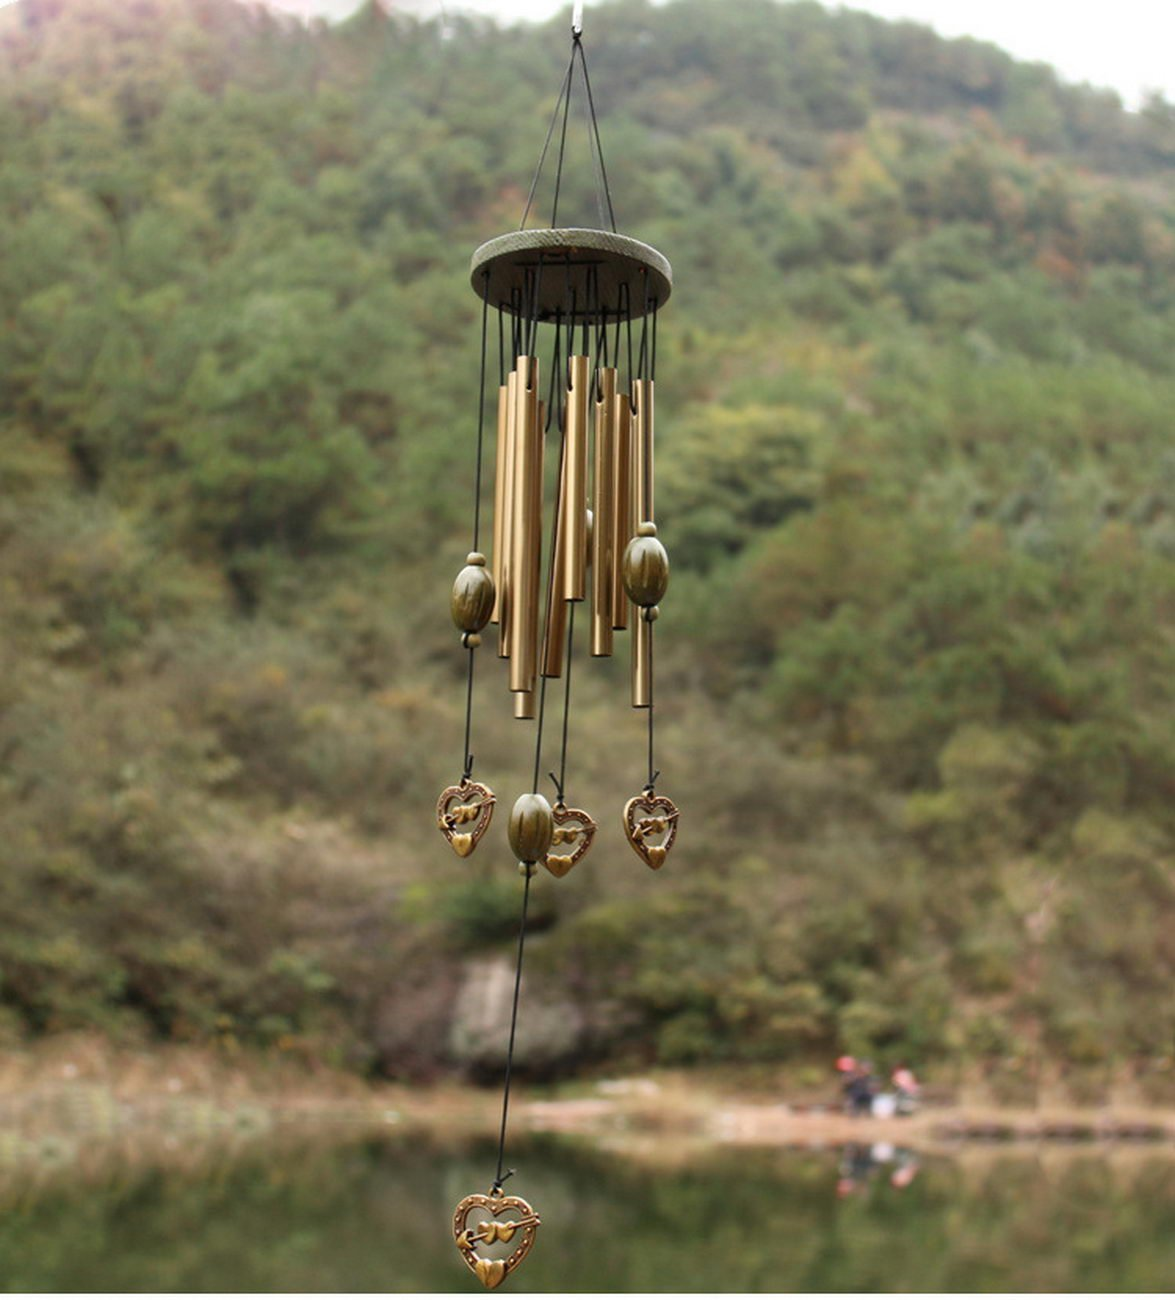 many pipe rust wood wind chimes wind chimes birthday birthday gift birthday gifts metal wind chimes wood wind chimes wind chimes more wind chimes tube antirust